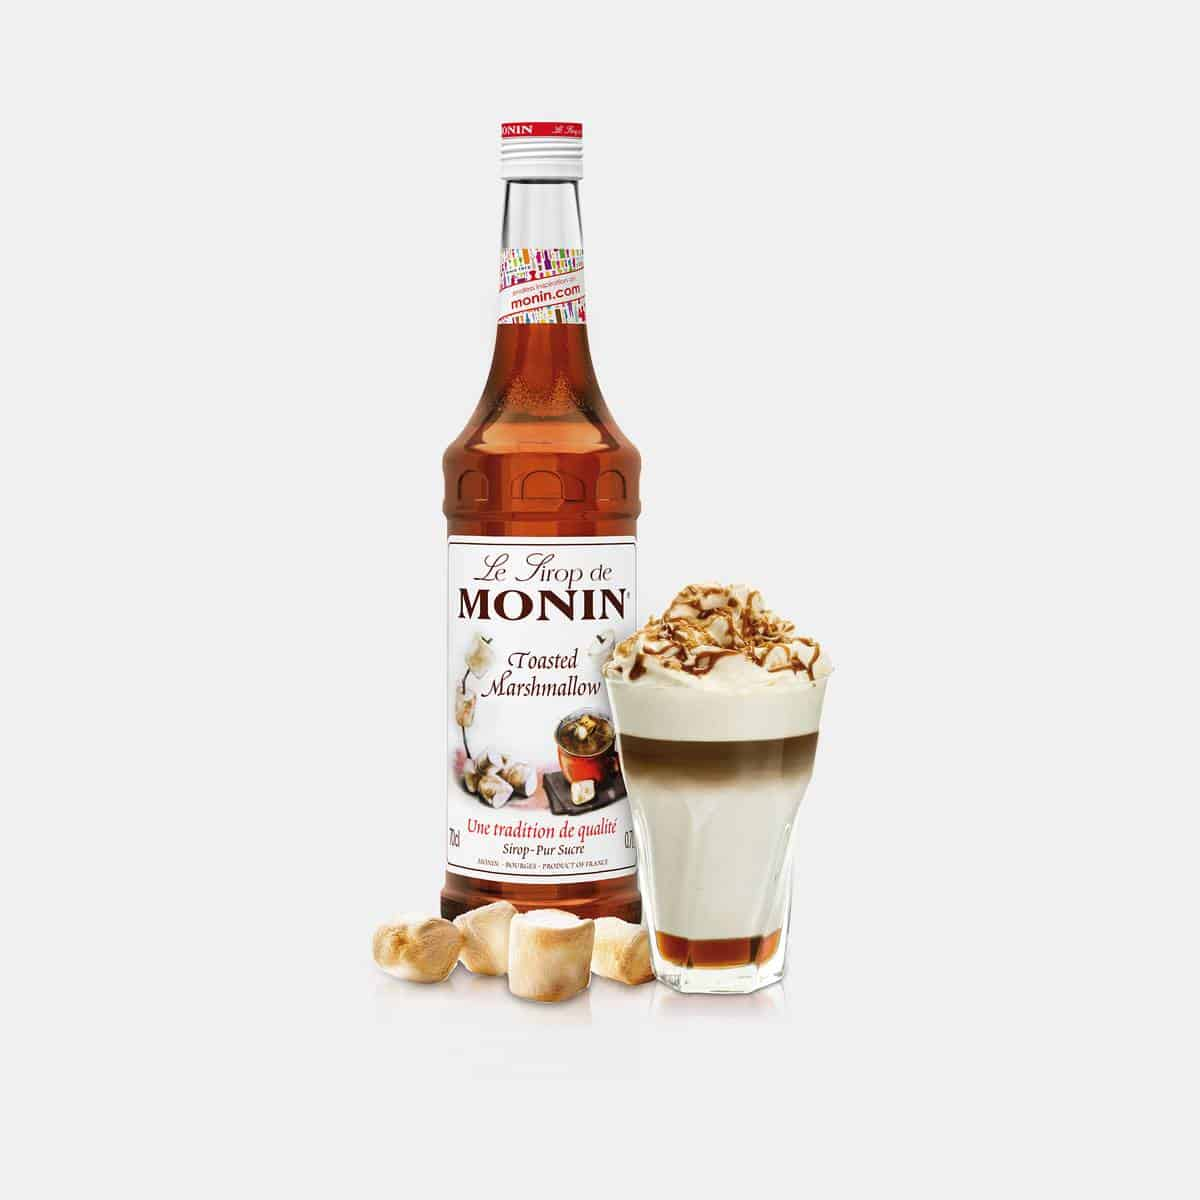 Monin 700ml Glass Bottle of Toasted_Marshmellow Syrup with Drink